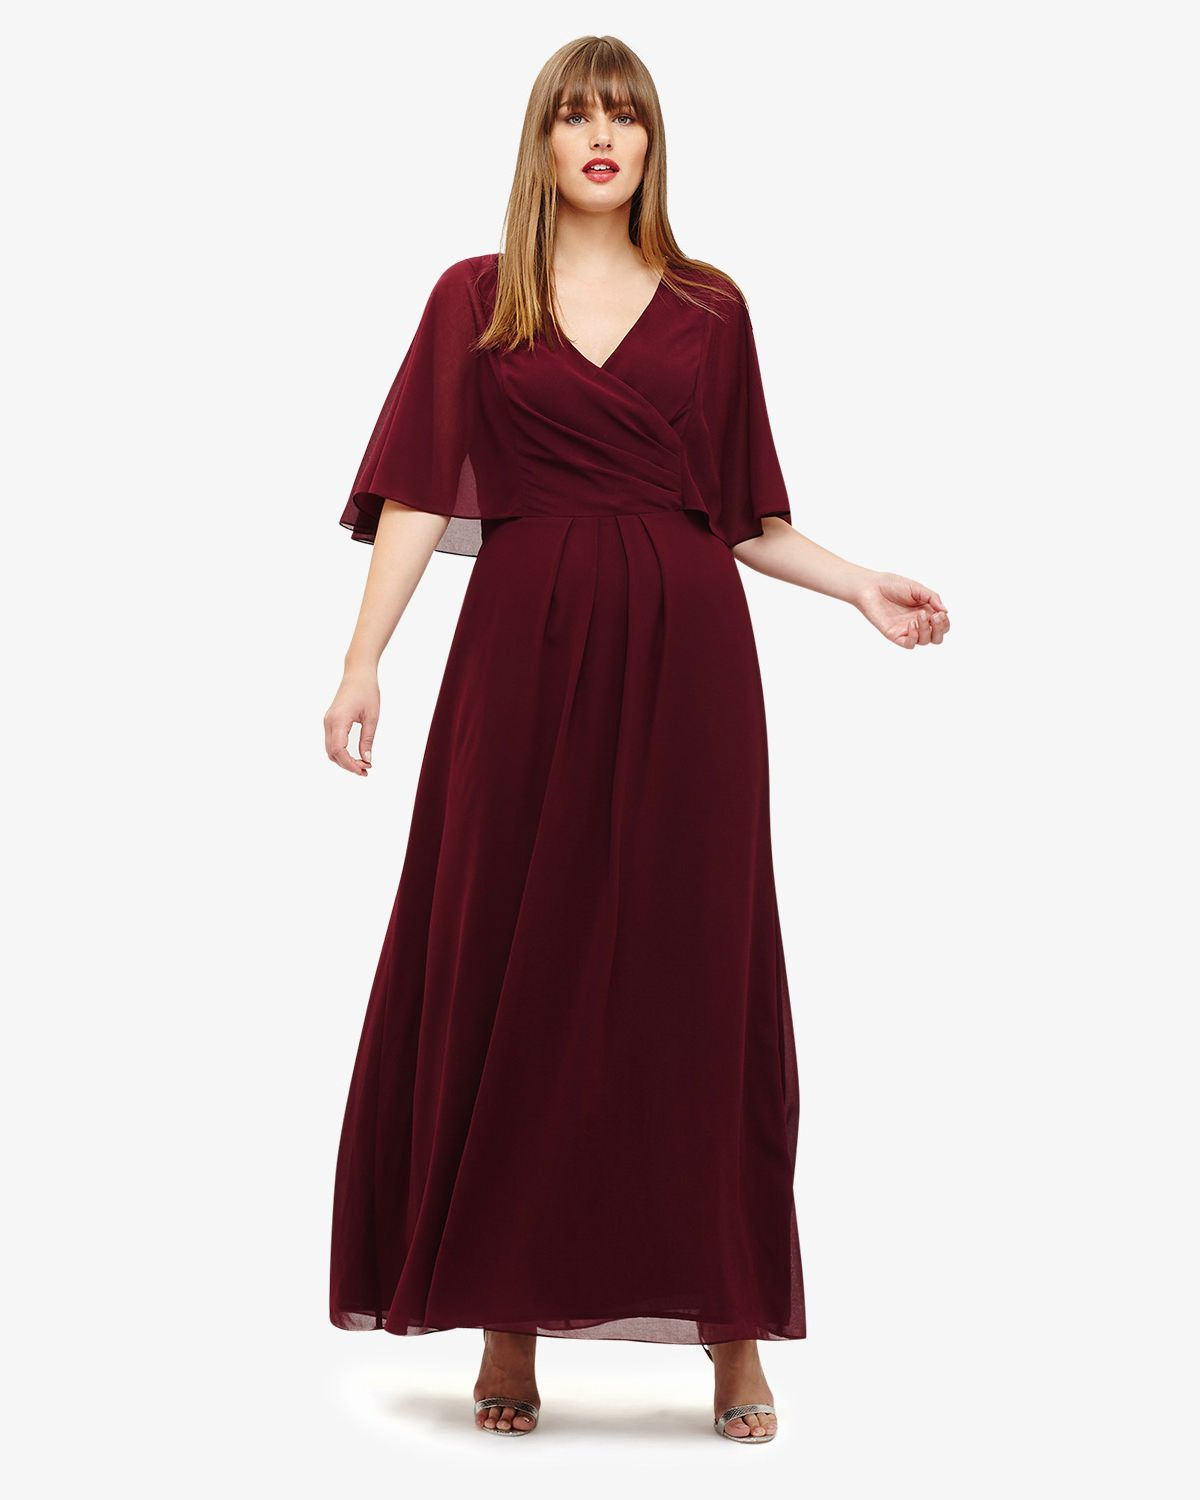 Opal Maxi Bridesmaid Dress | Studio 8 | Sleeved